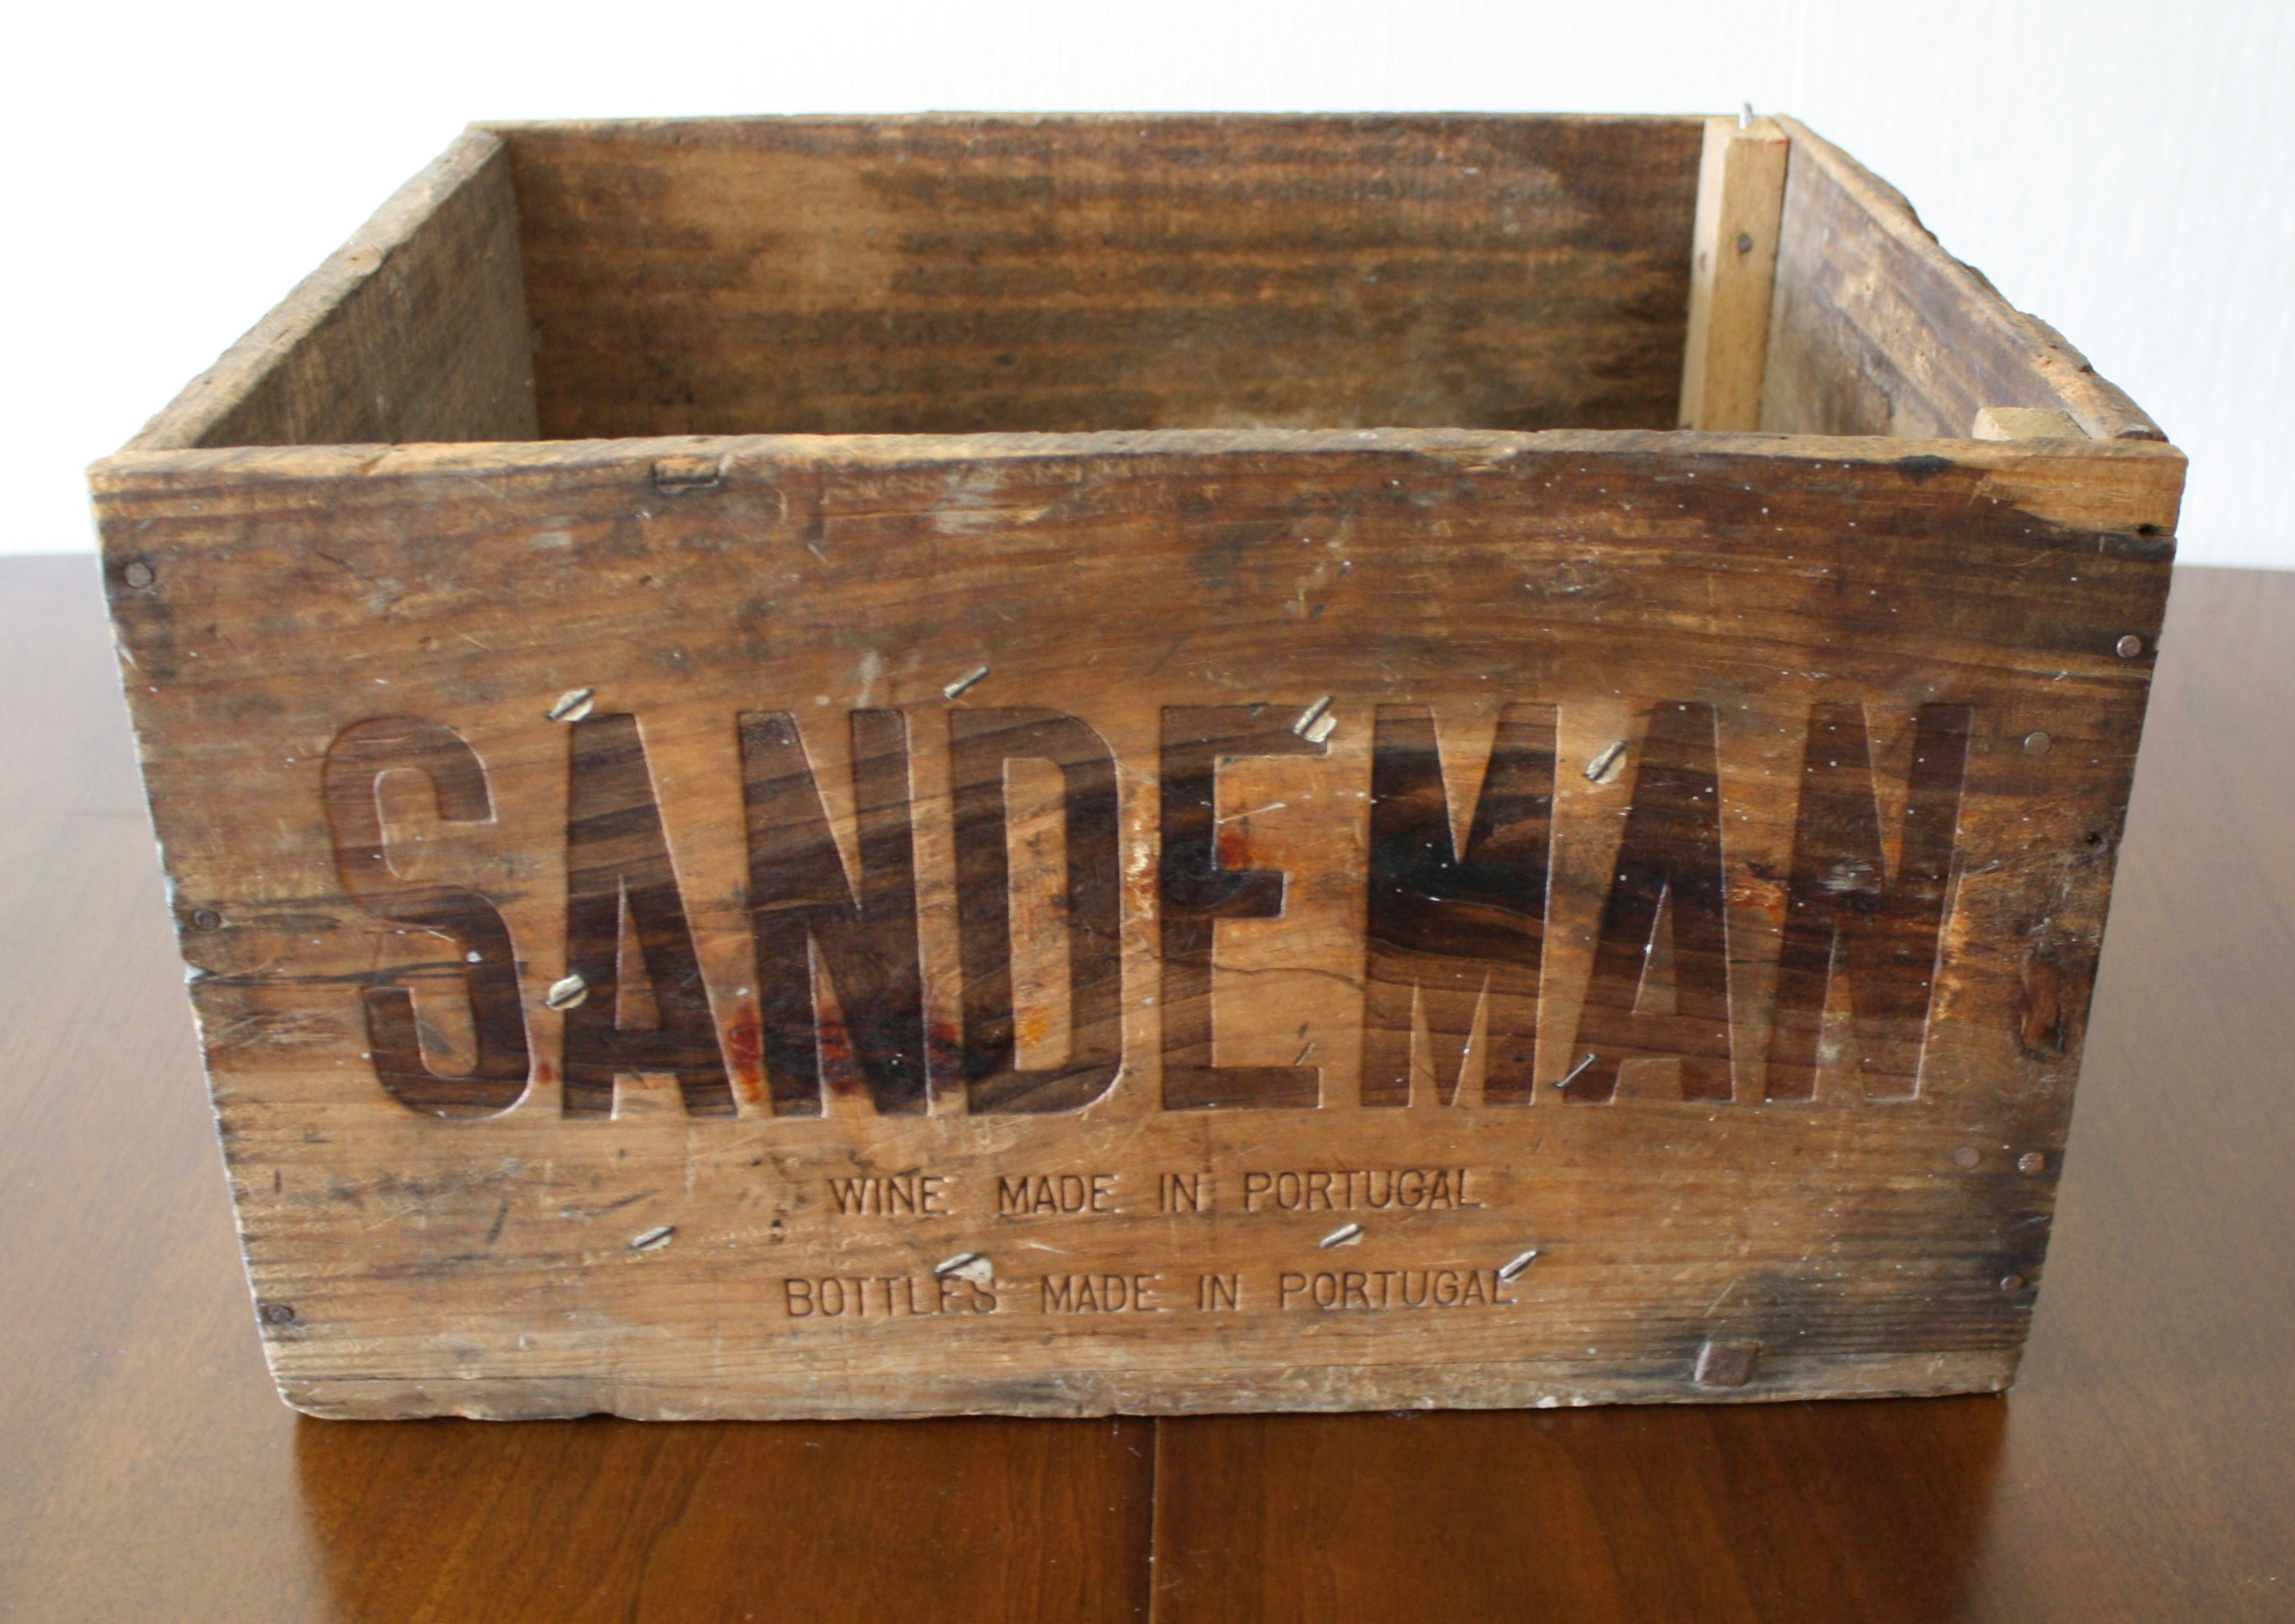 vintage wooden wine crate for sandeman port beautiful